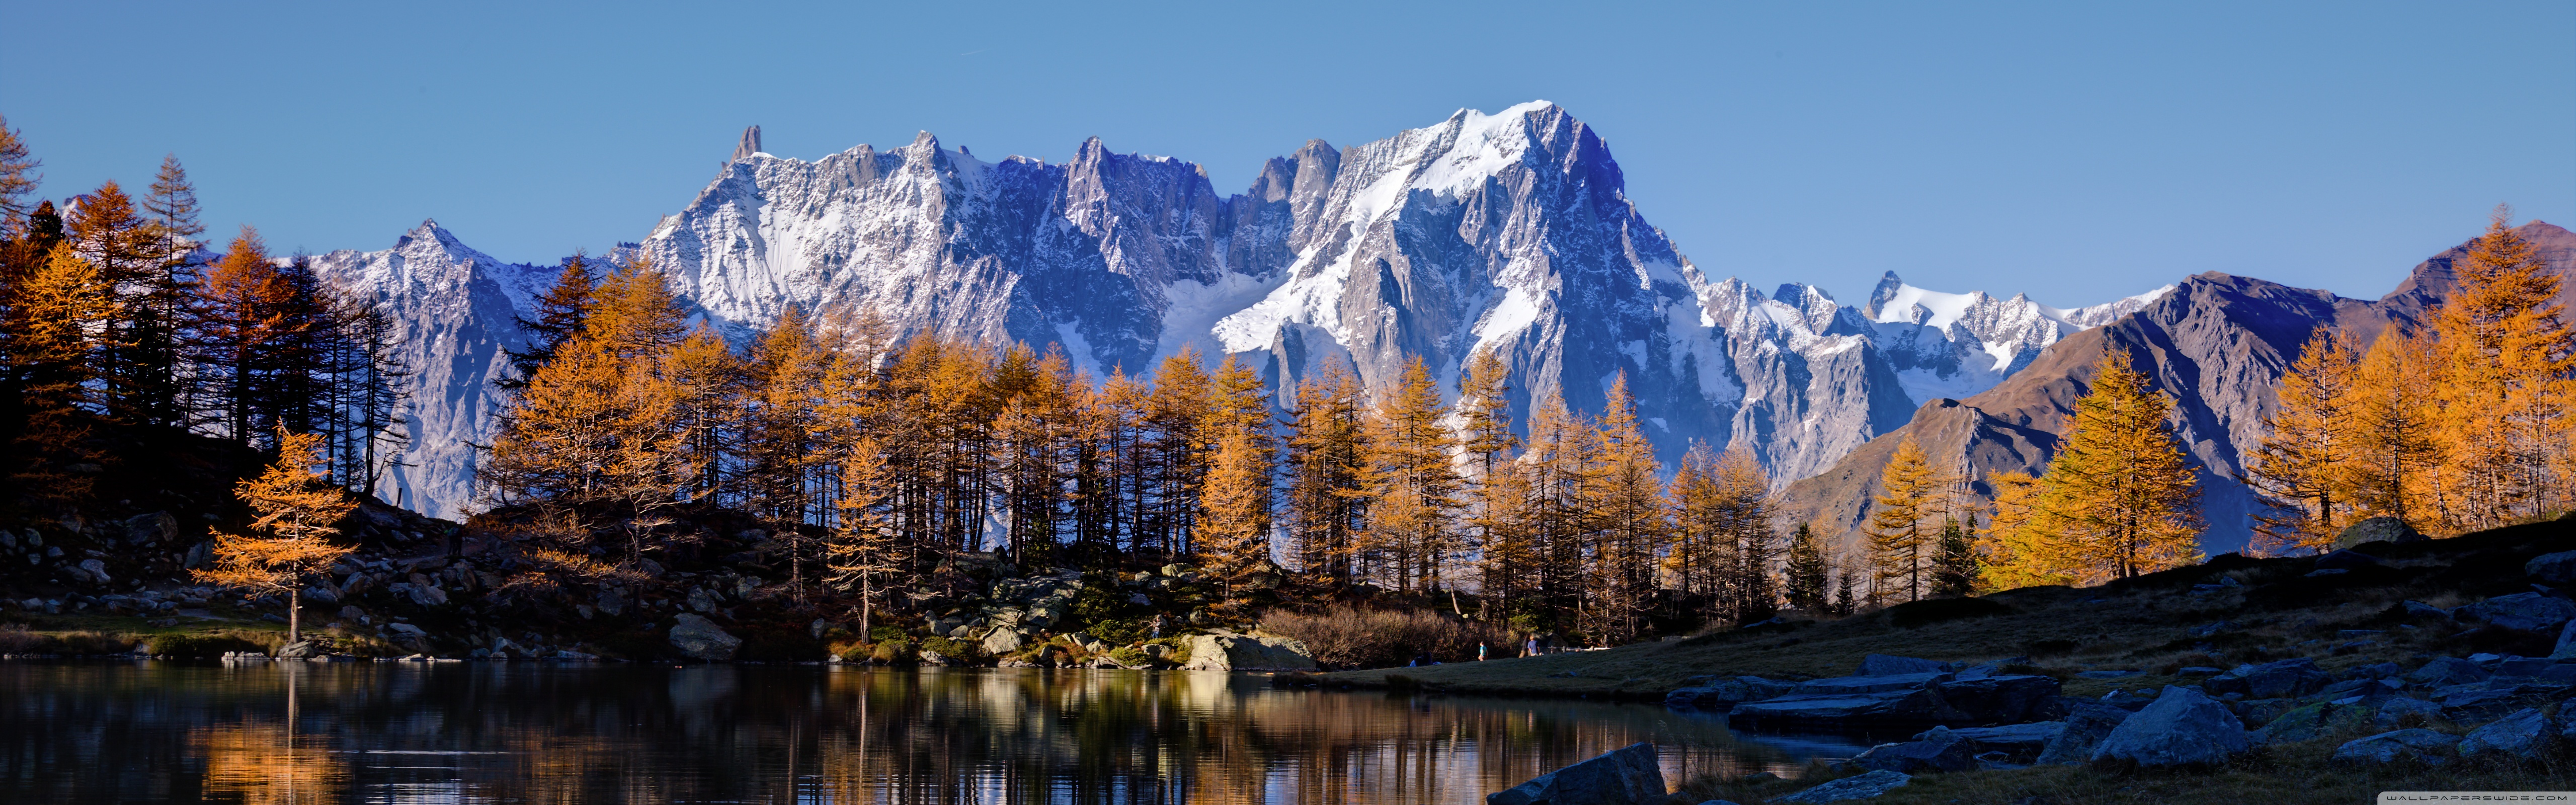 Tablet Wallpaper Europe Fall Mont Blanc Autumn 4k Hd Desktop Wallpaper For Dual